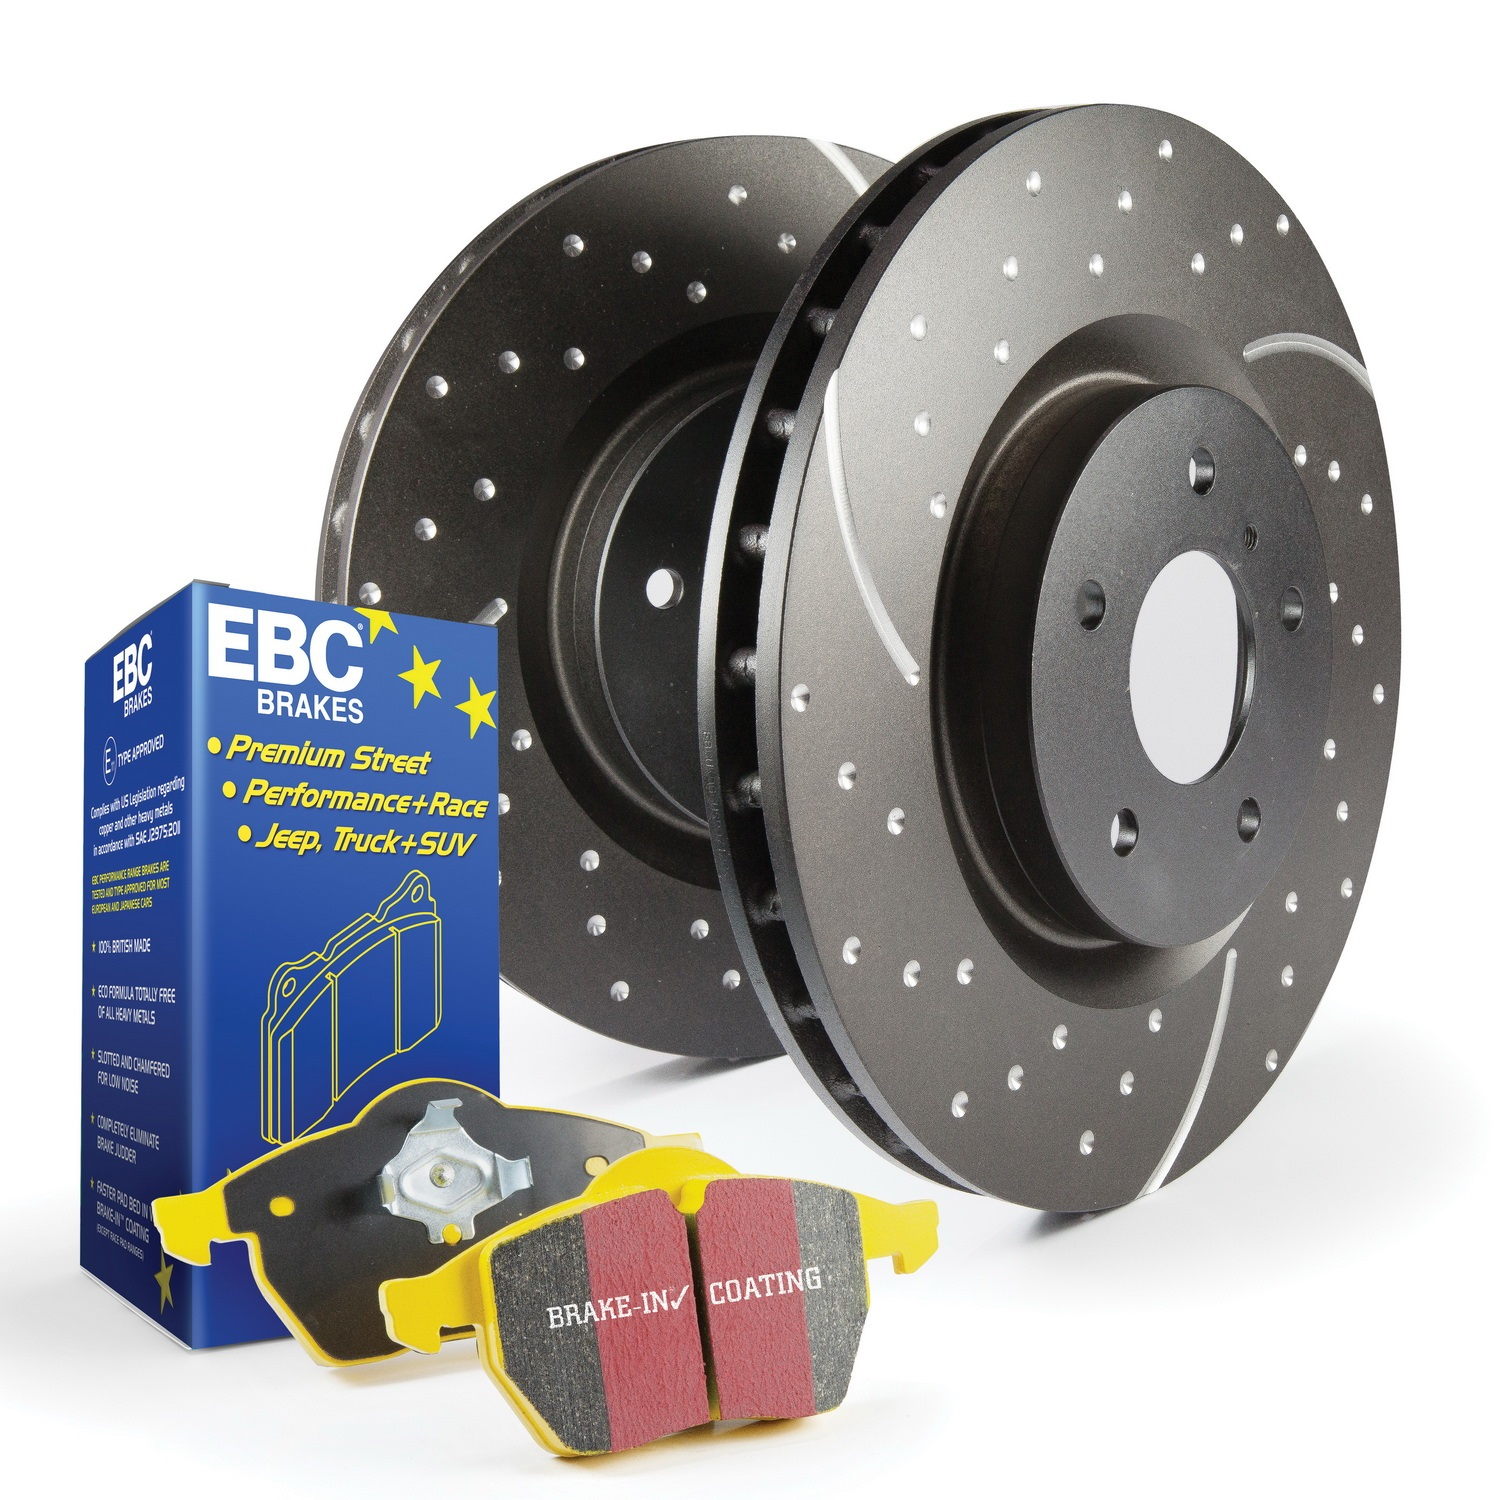 EBC Brakes S5KF1504 S5 Kits Yellowstuff And GD Rotors Fits Range Rover Sport